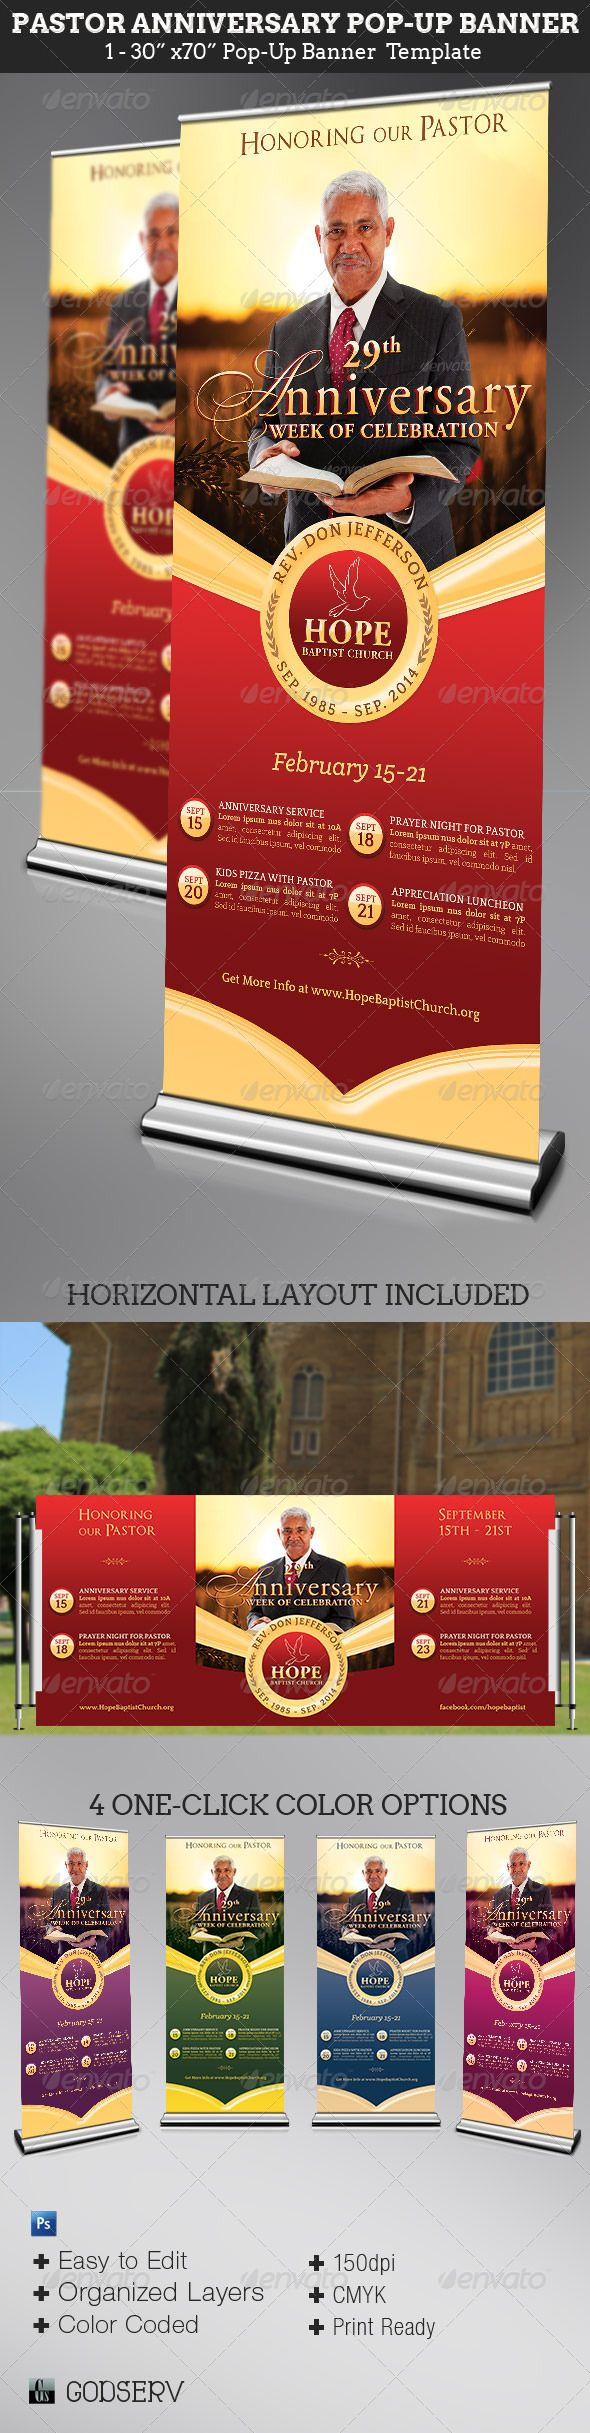 pastor anniversary pop up banner template cfym pinterest